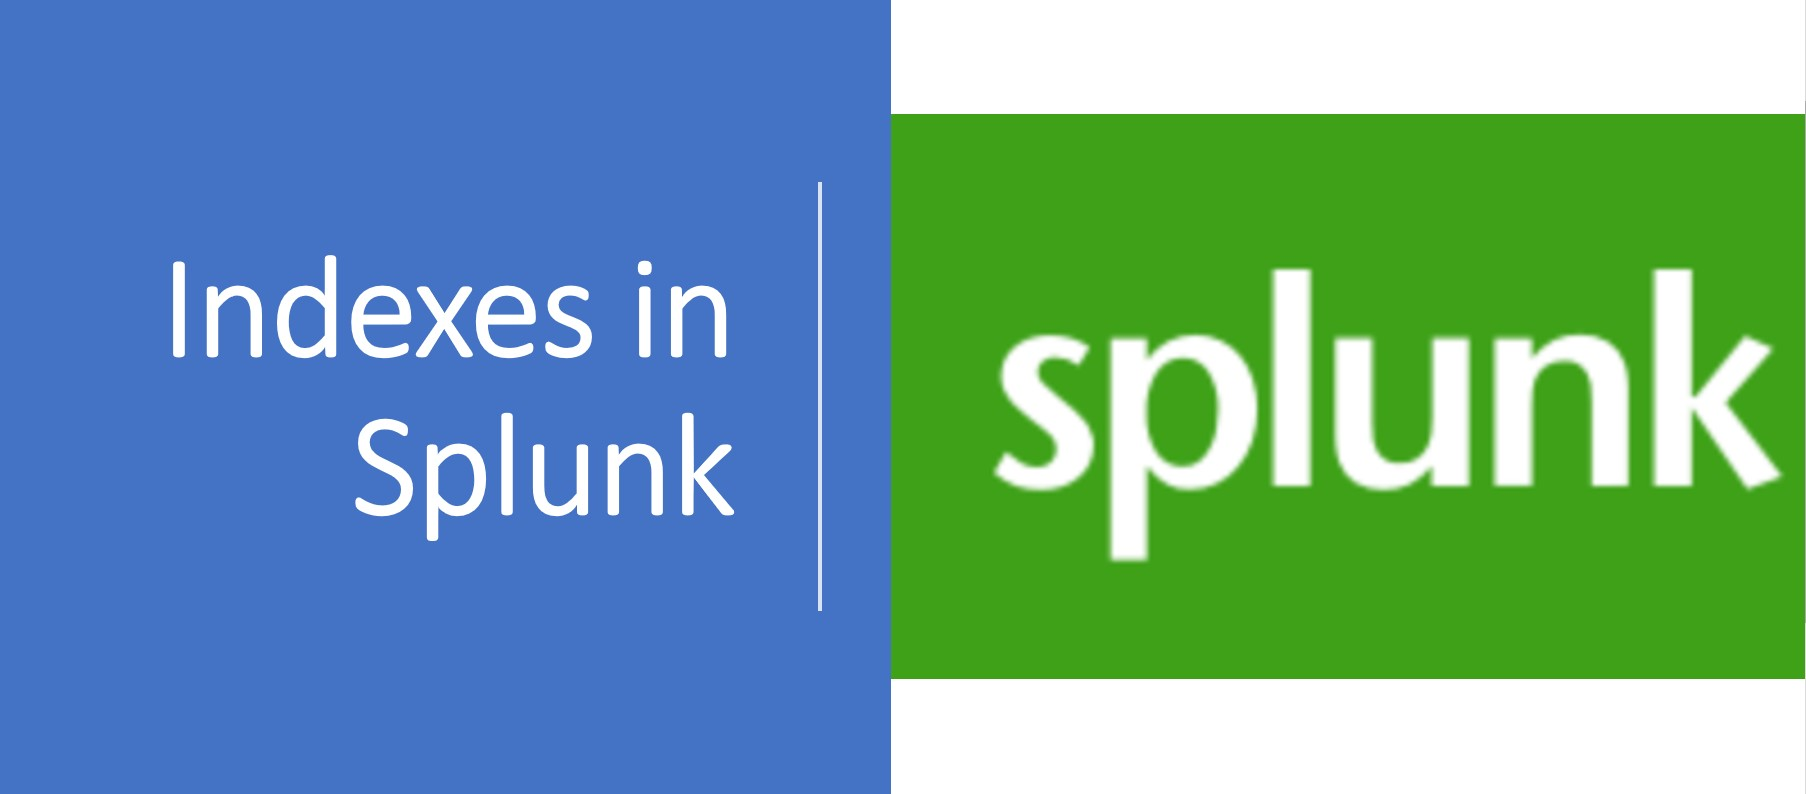 indexes_in_Splunk